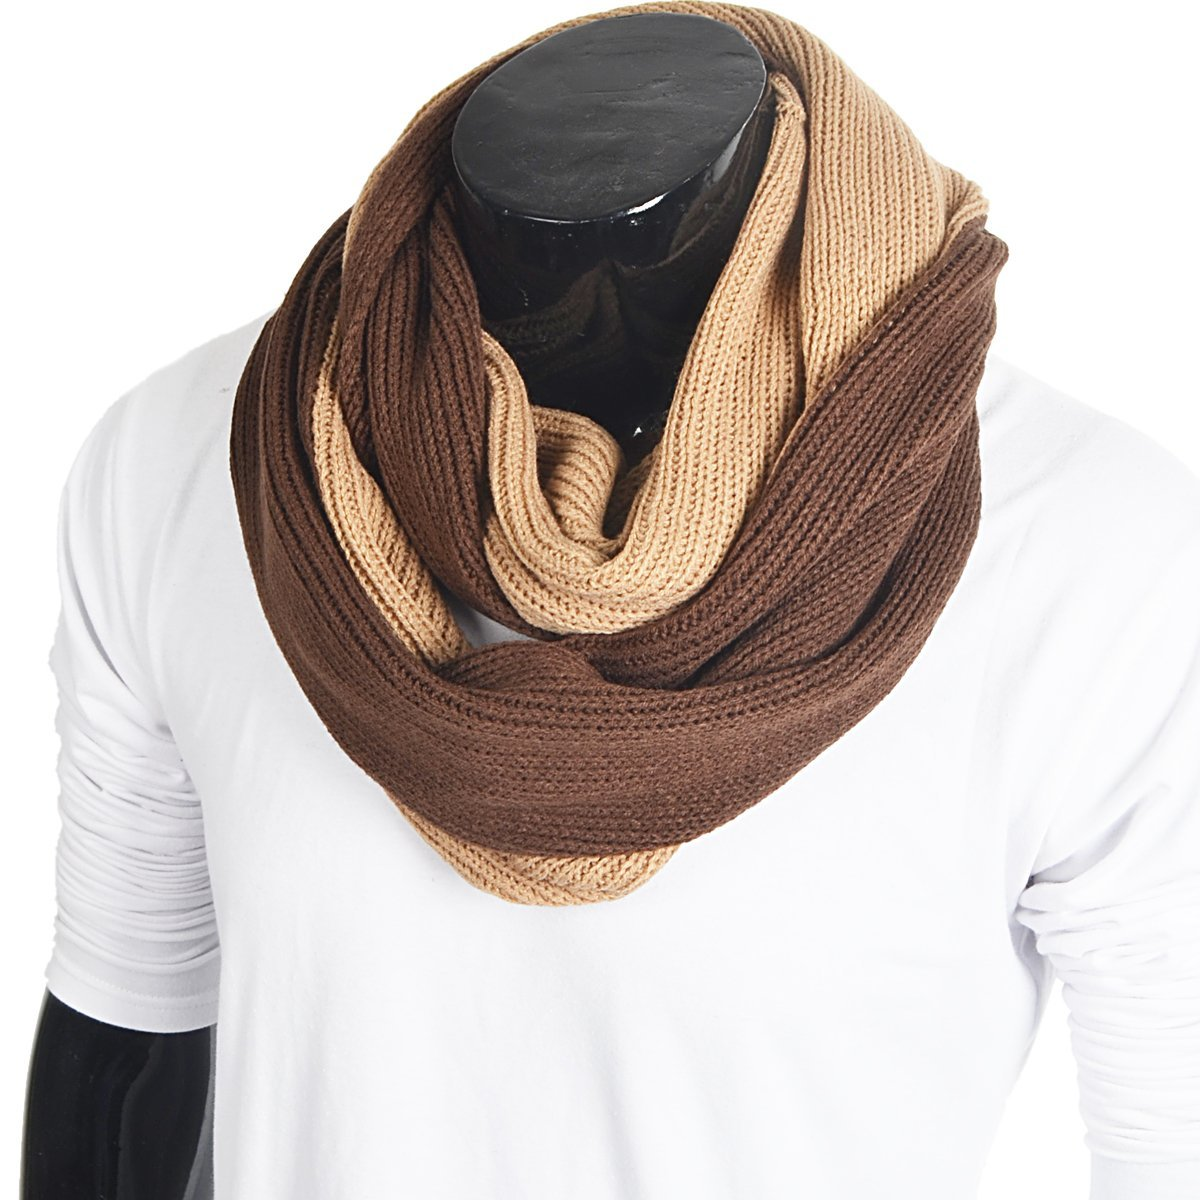 FORBUSITE Stylish Men Cable Soft Knit Infinity Scarf for Winter Army Green E5041b-Green